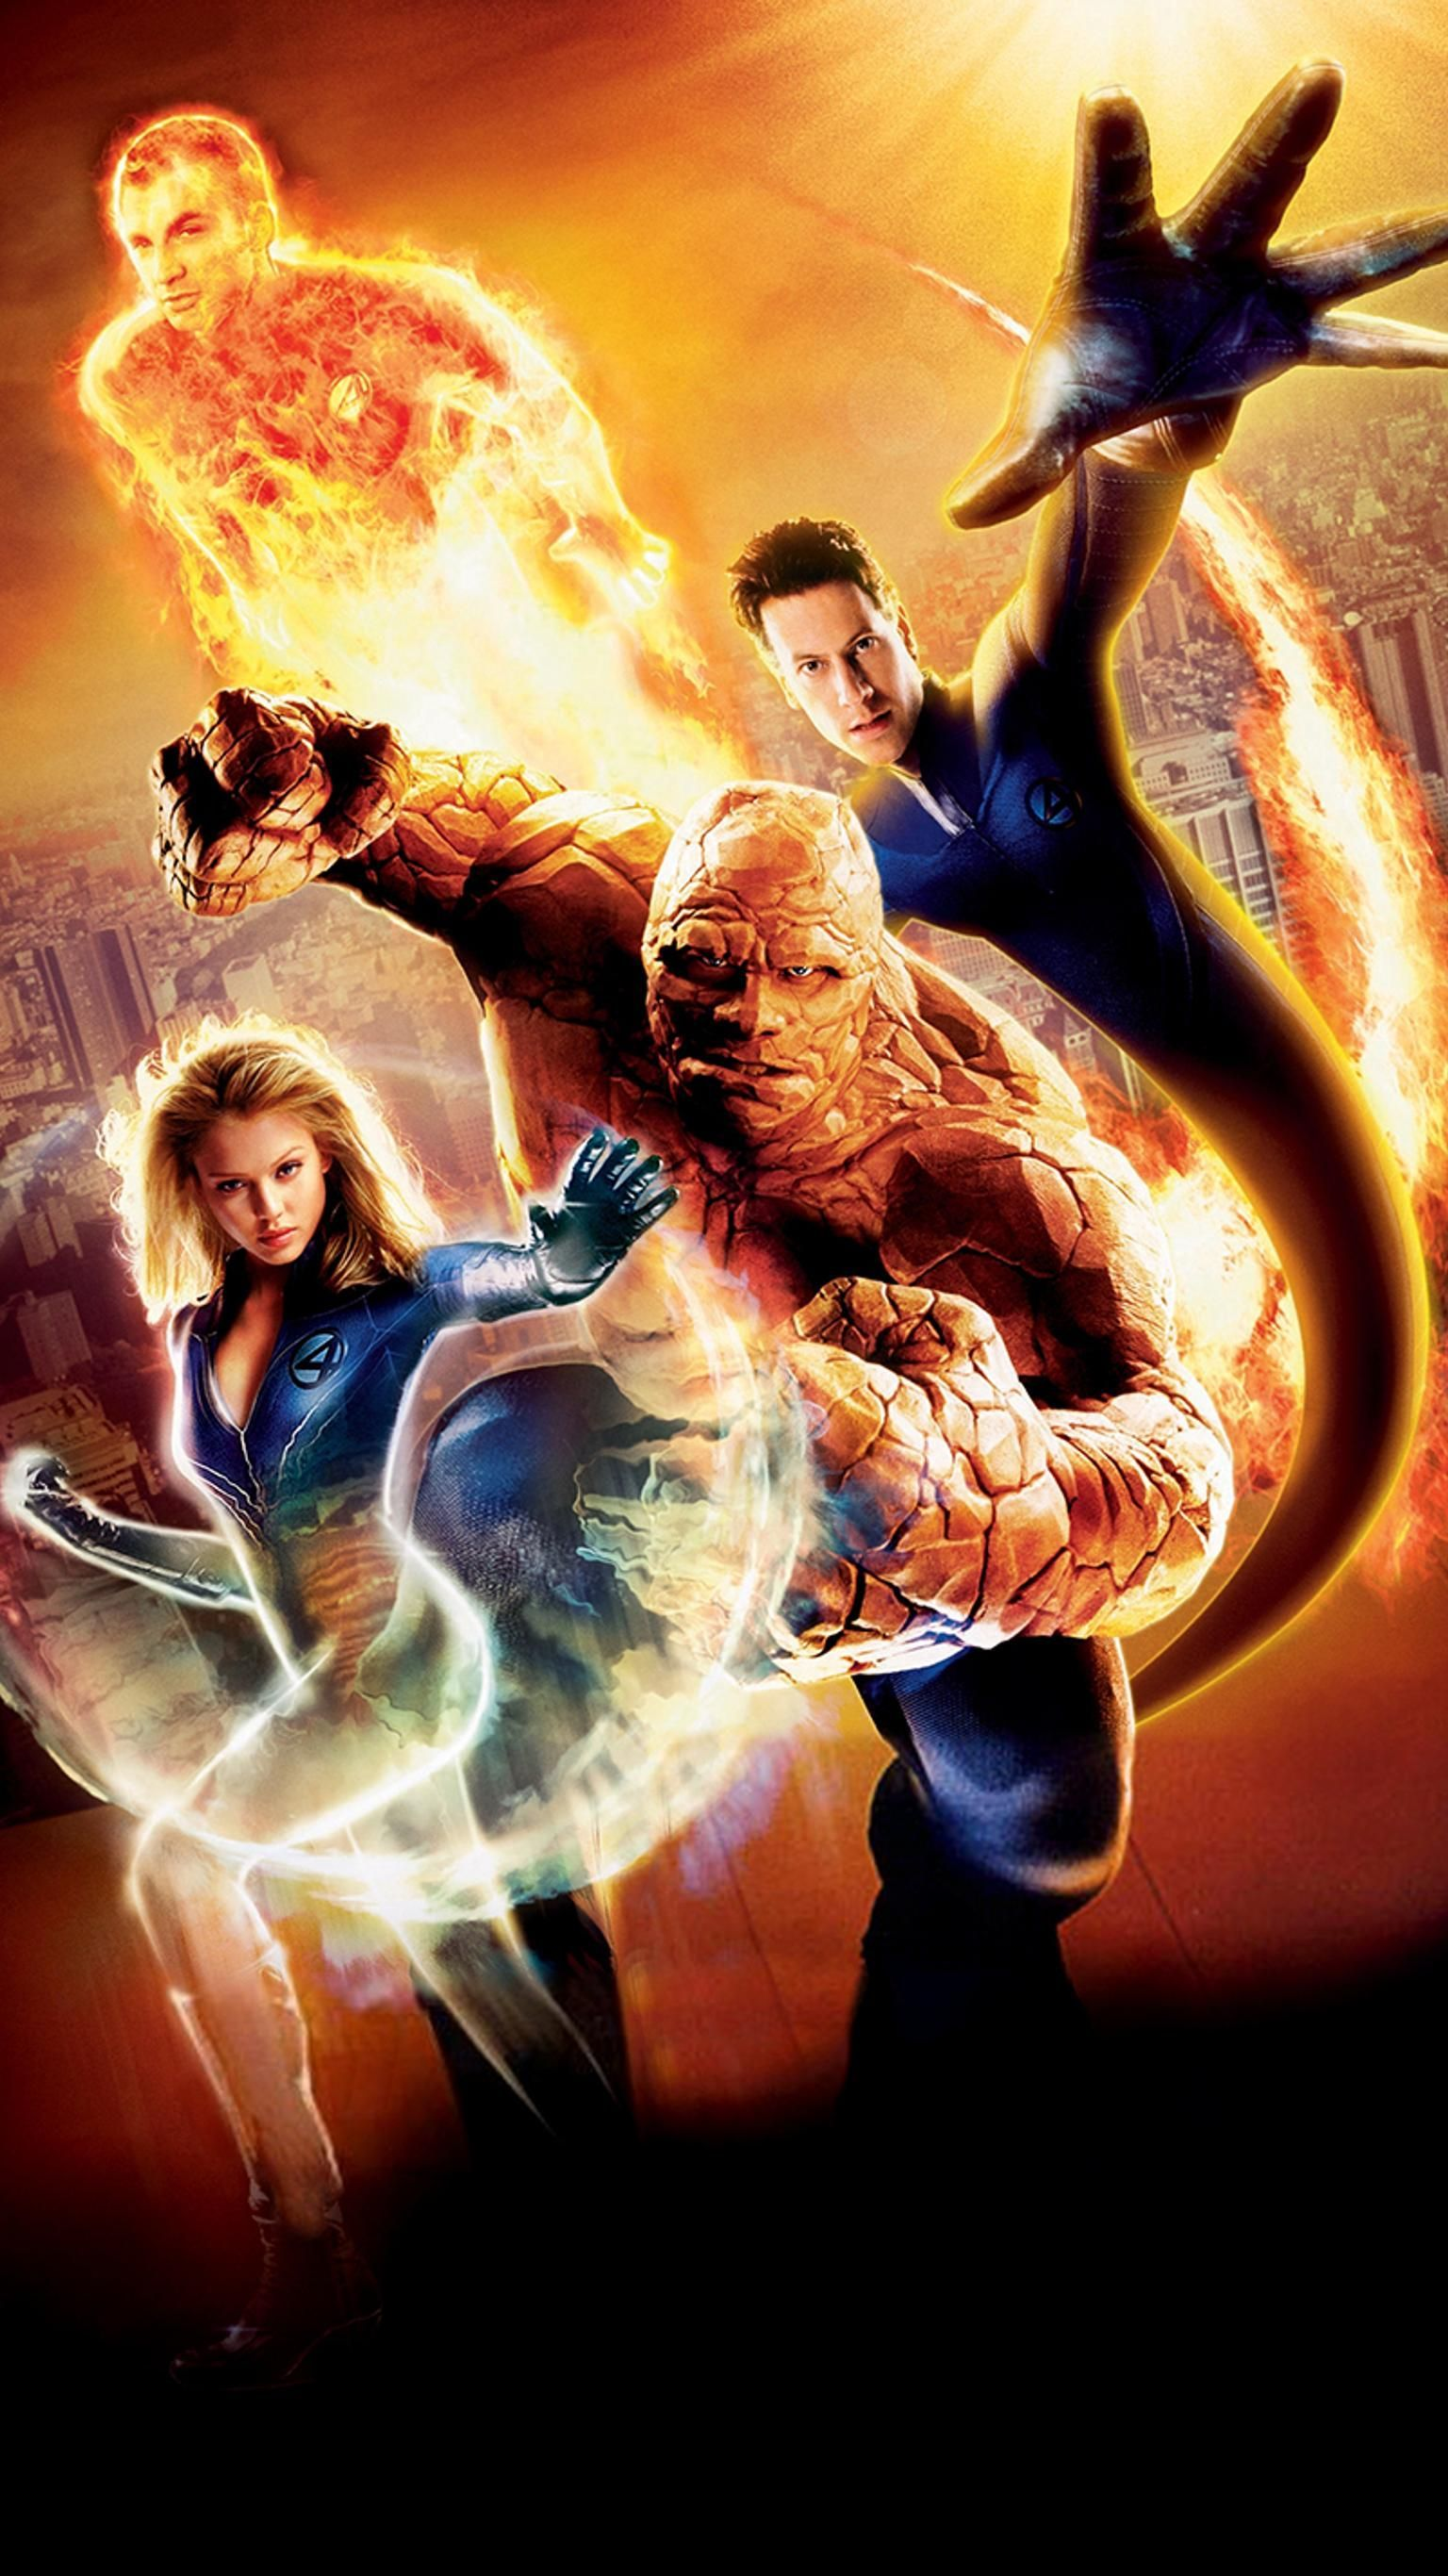 Fantastic Four (2005) Phone Wallpaper | Moviemania ross marvel frost four ramos kirby lee deodato s